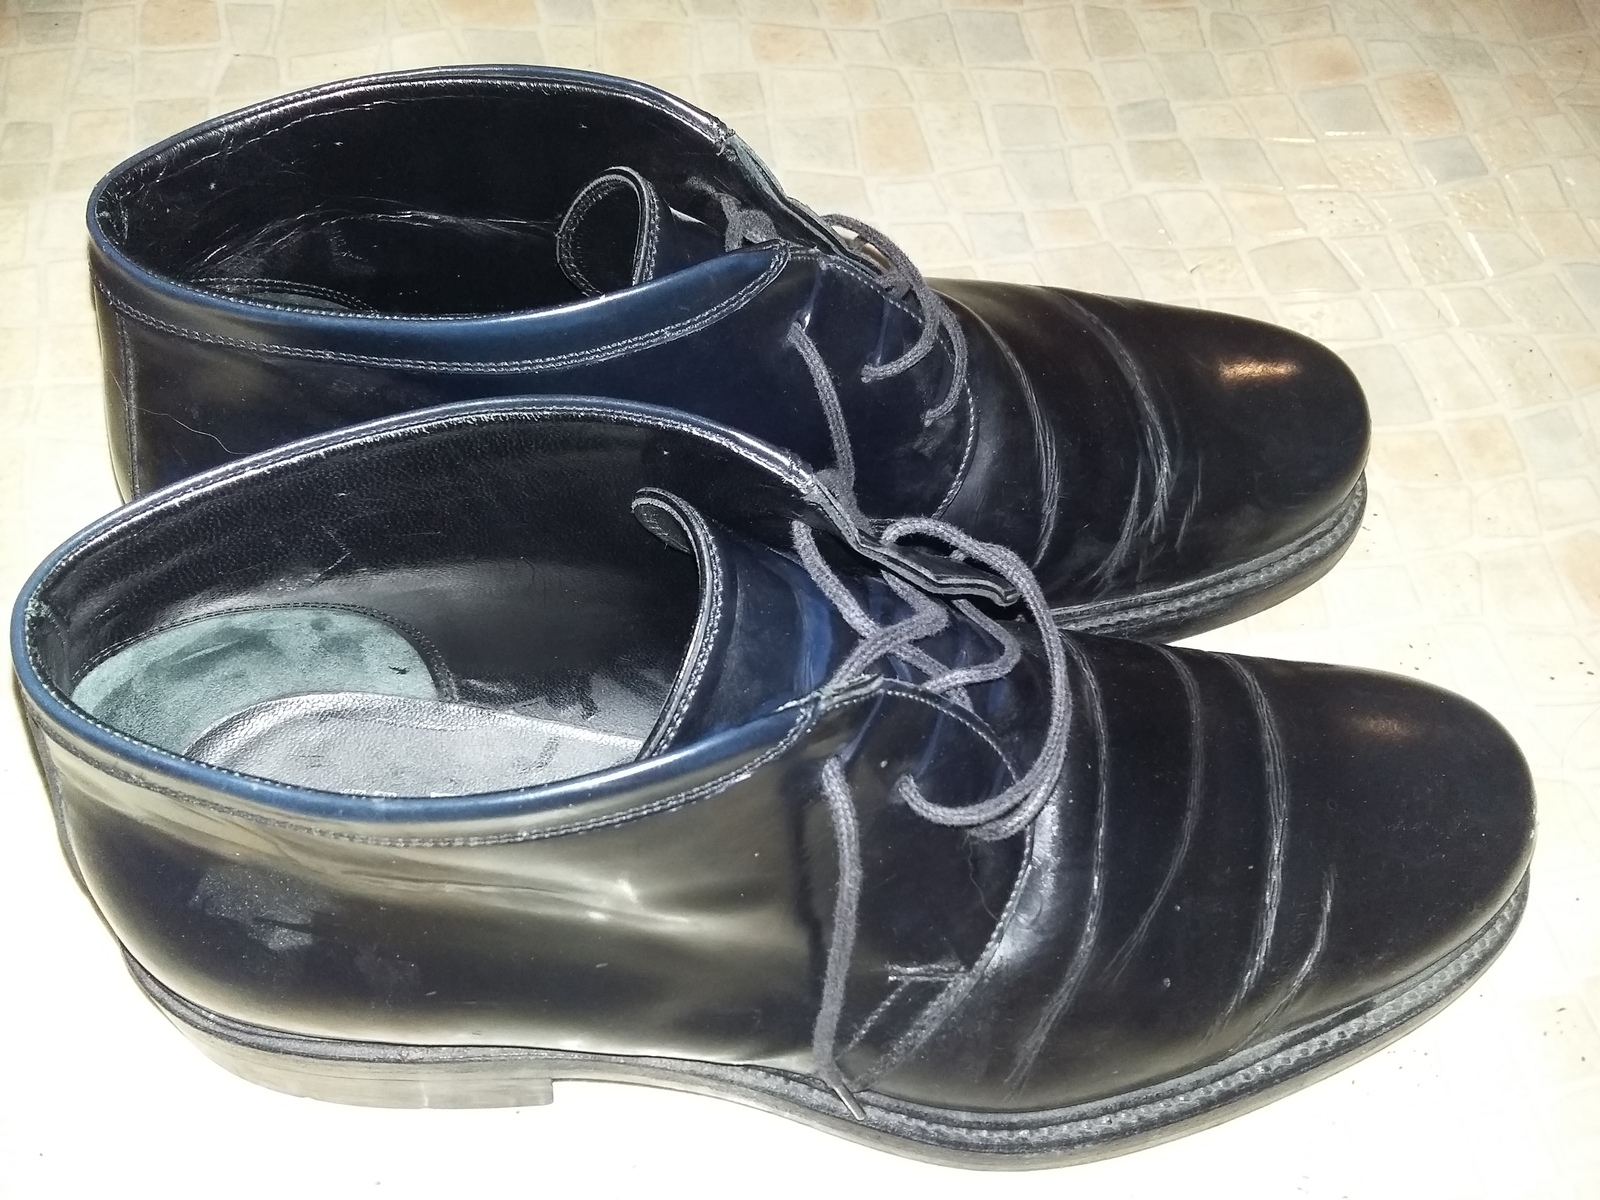 988e1c7a3615c Mens Salvatore Ferragamo Black Leather Shoes Made In Italy Dress in Luxury  - $129.99